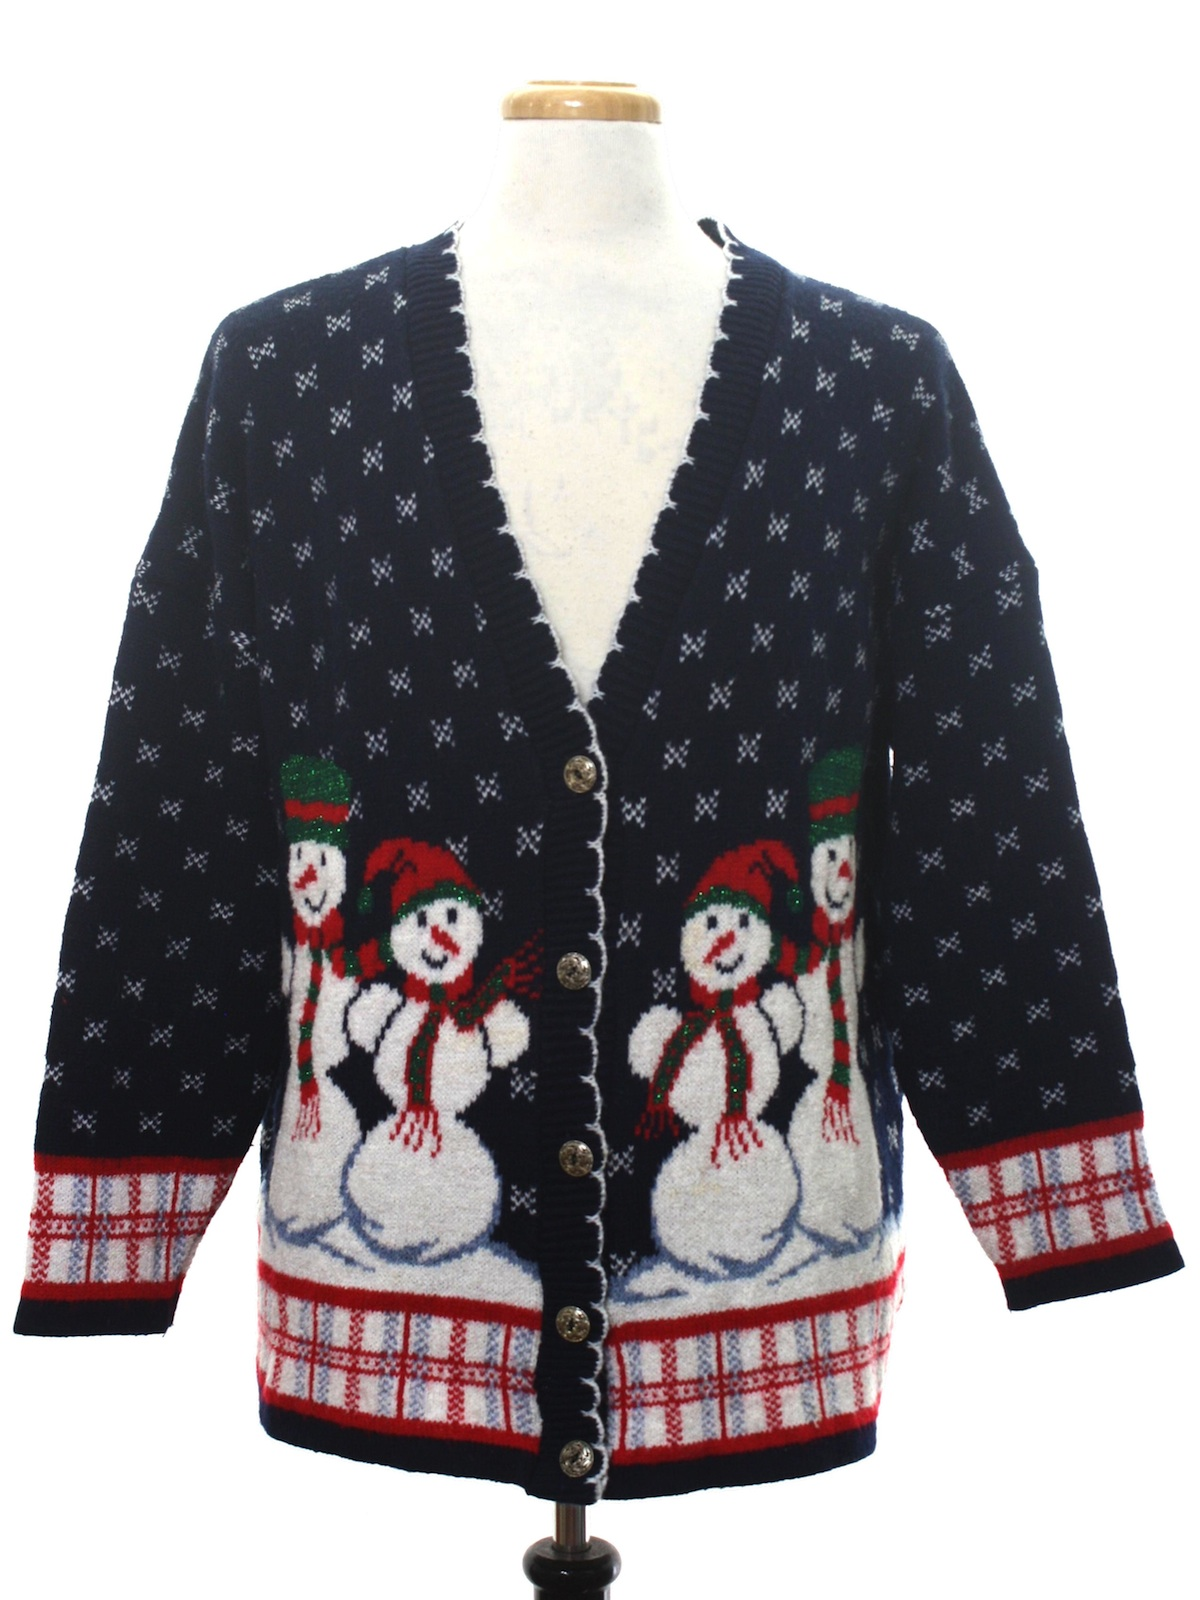 1980 s unisex vintage ugly christmas cardigan sweater $ 54 00 in stock